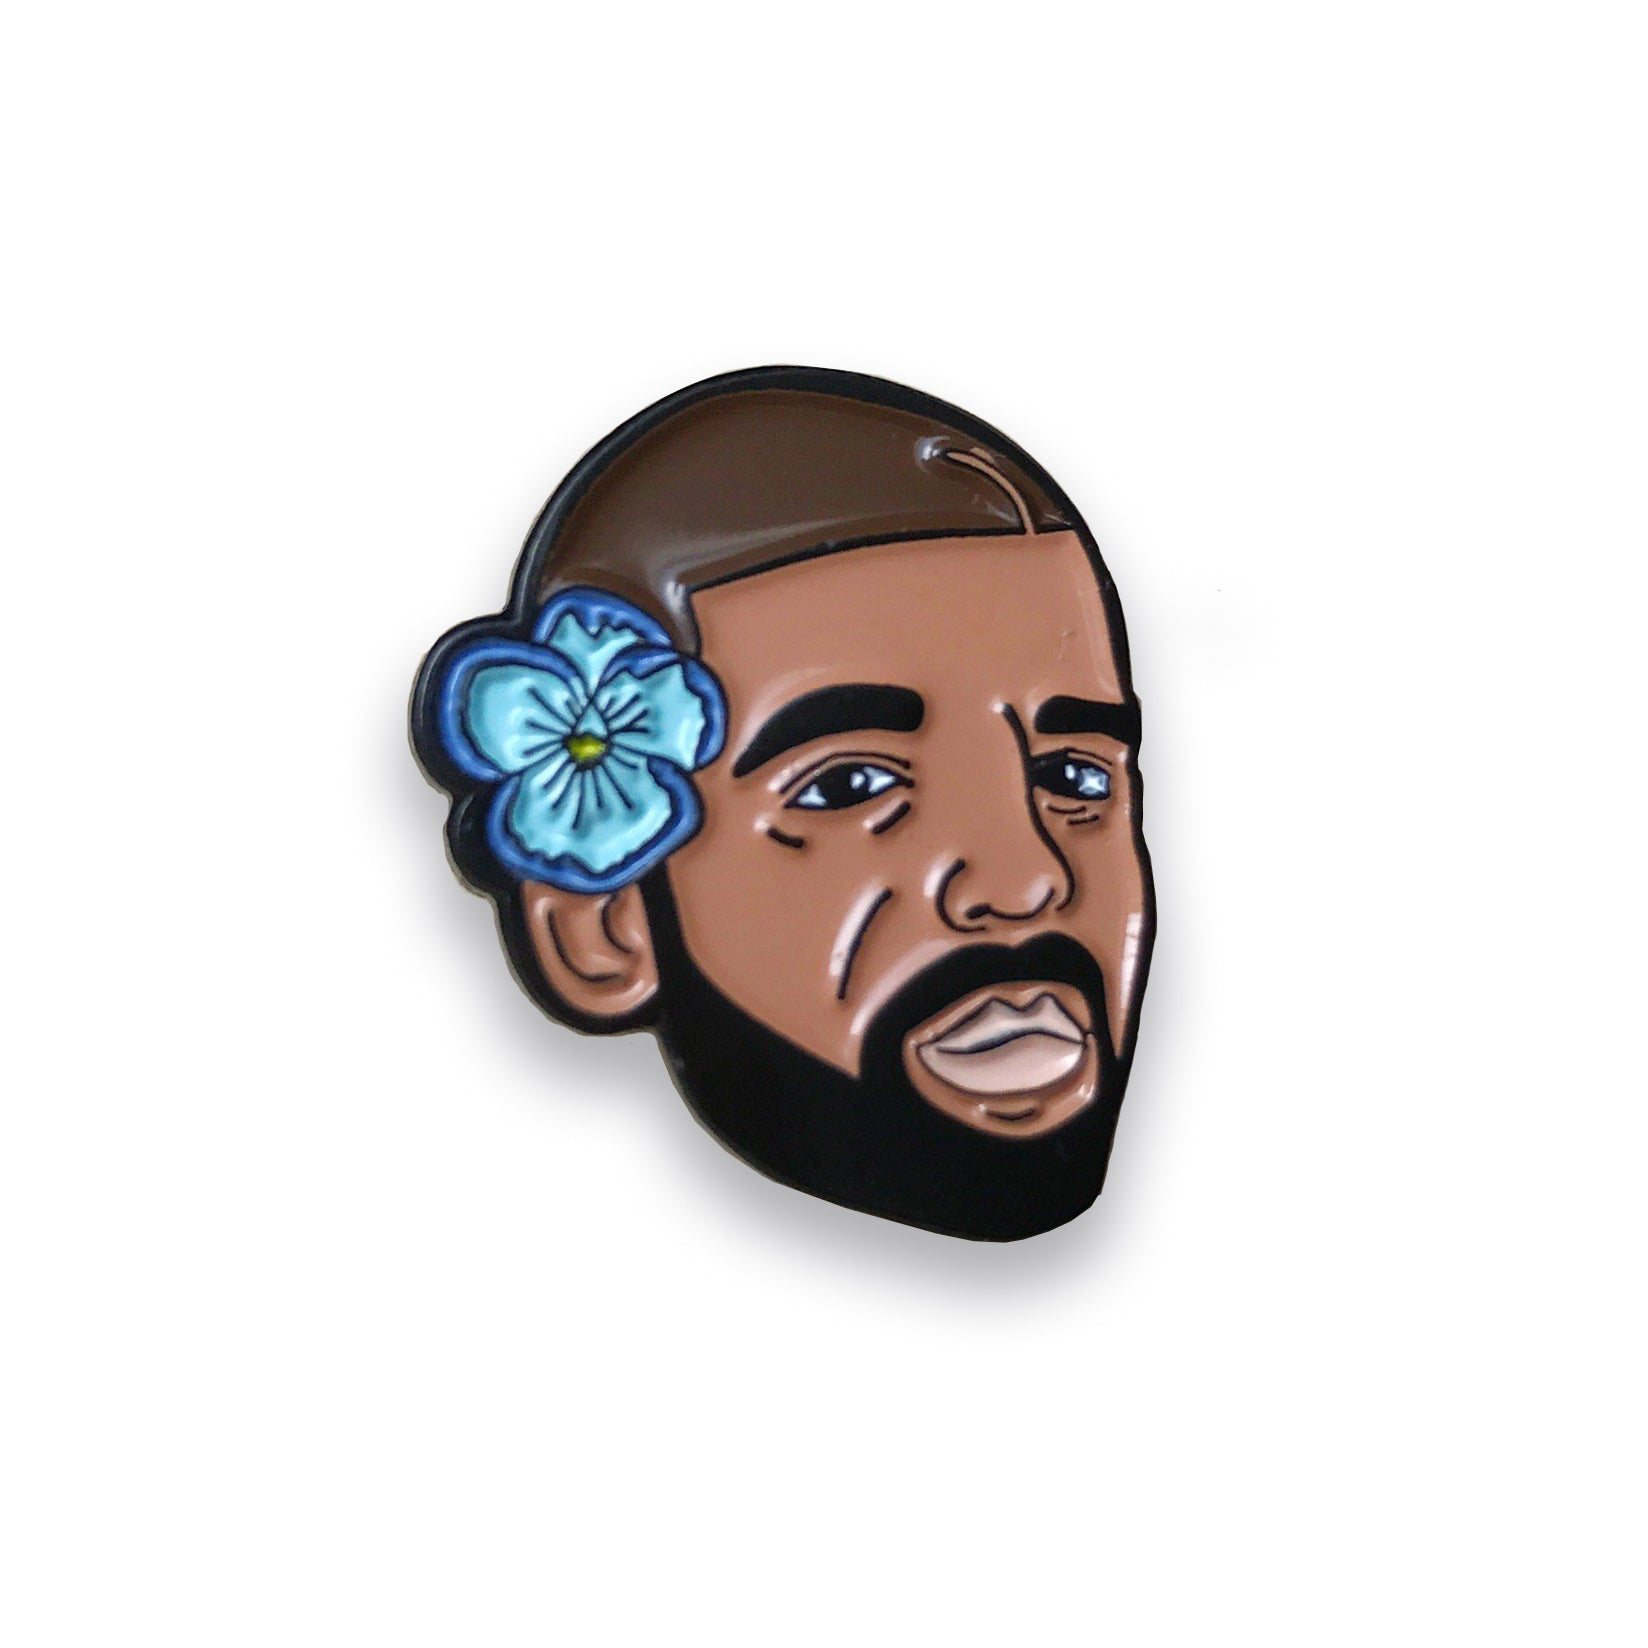 Drake Lapel Pin, Pins, - Sad Truth Supply - Enamel Pins